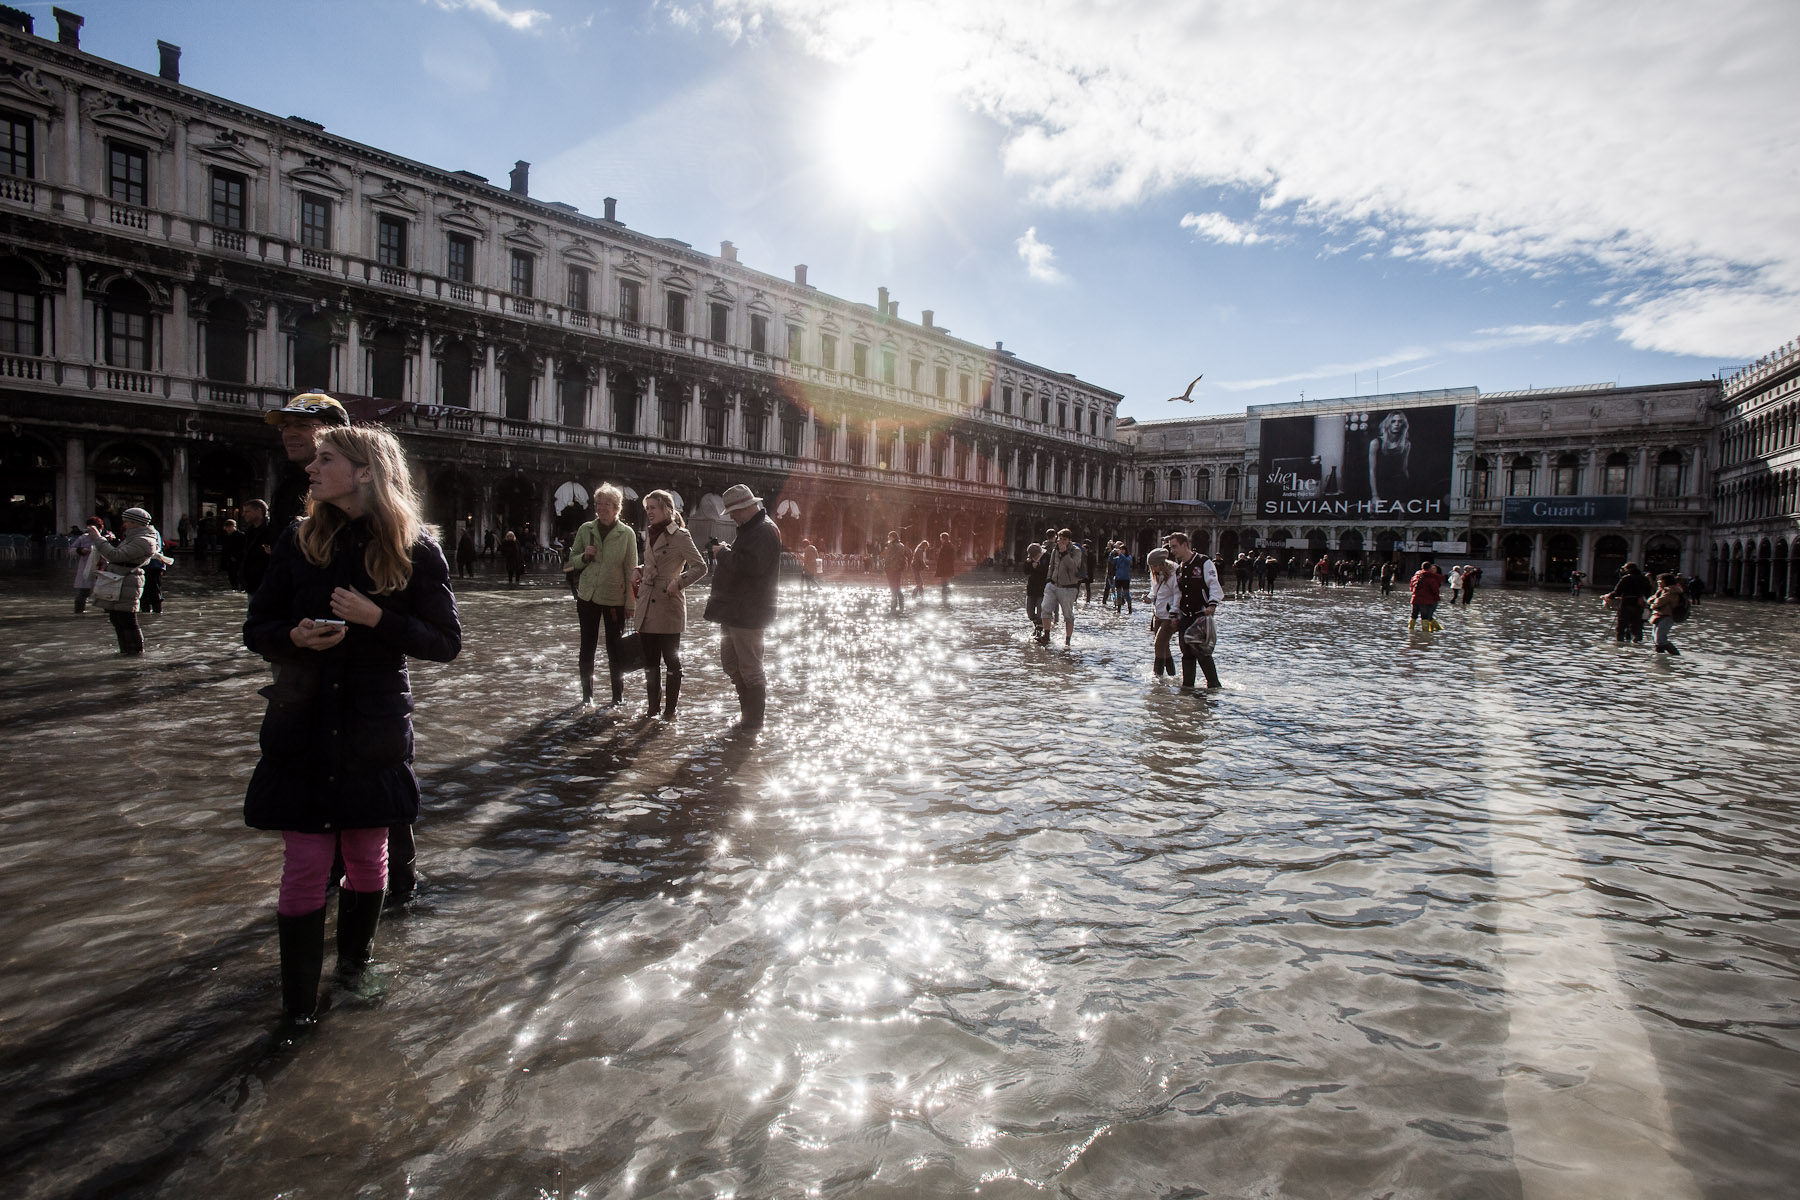 Strolling the flooded streets of Venice has become a new Venetian attraction. Everybody now knows Venice is sinking, but few actually realise that Venice could actually go under if no measures to save it were underway.